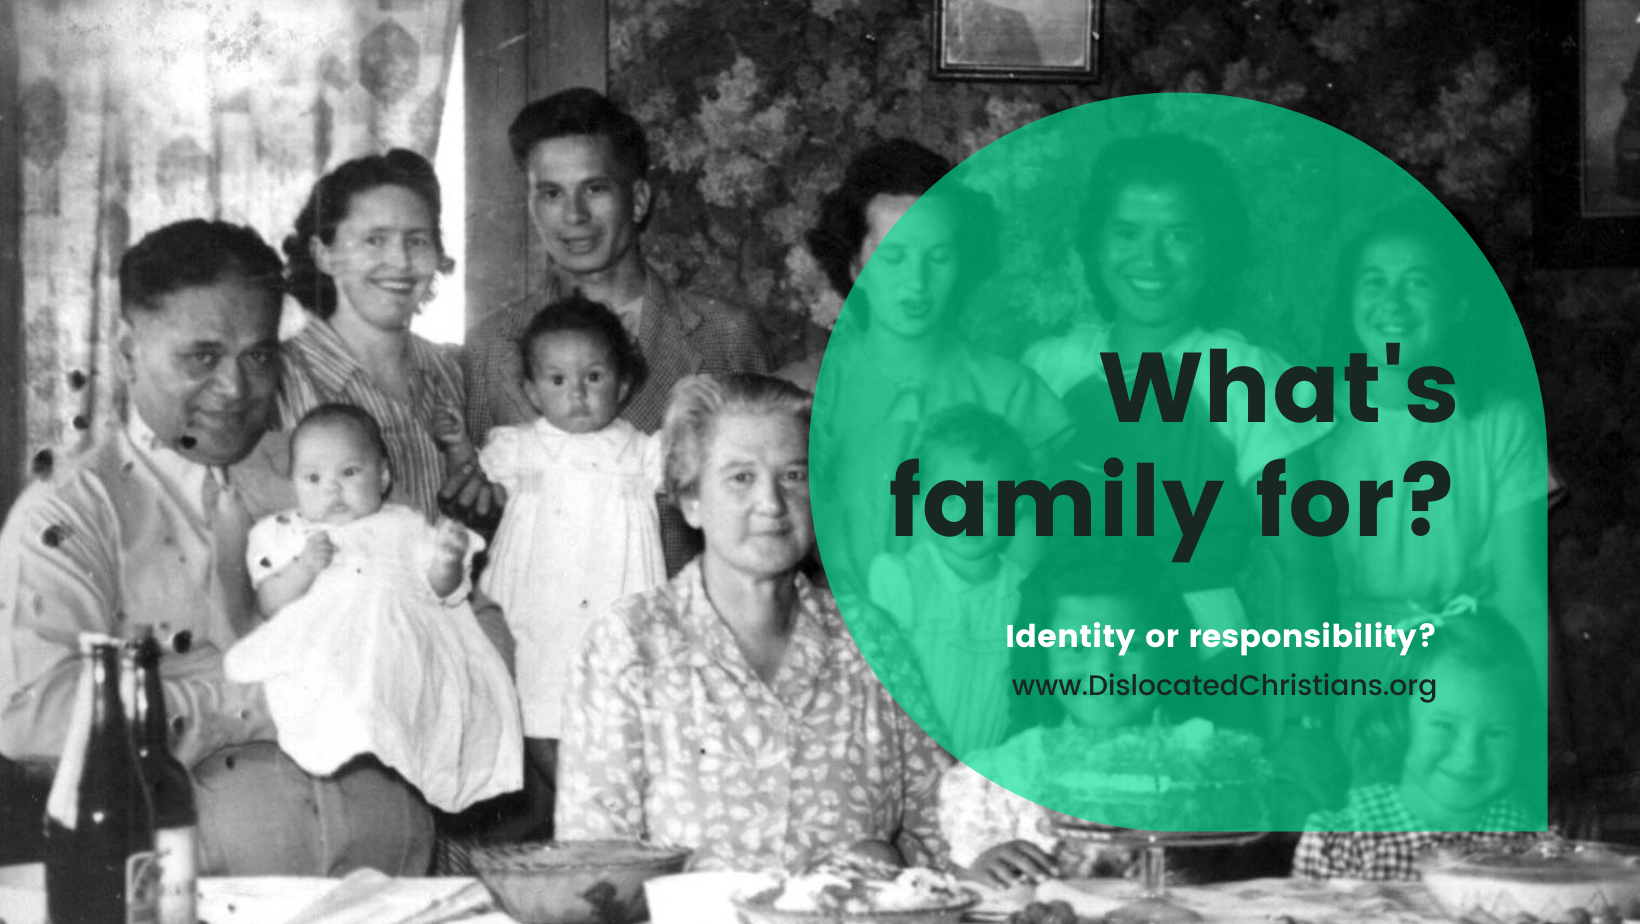 Generational family photo with overlaid question: What's family for? Identity or responsibility?